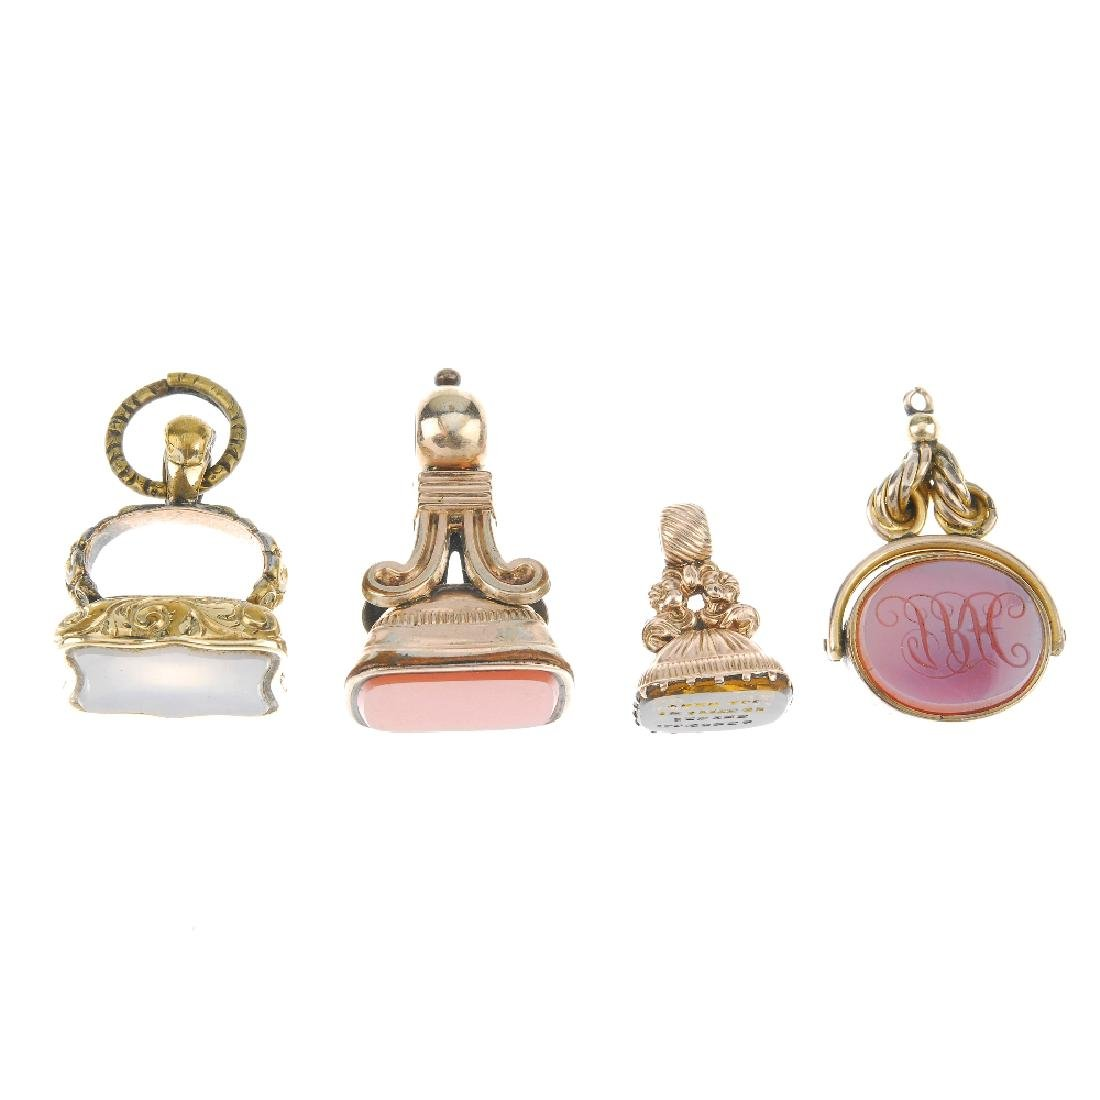 Six gem-set fobs. To include a yellow paste fob of